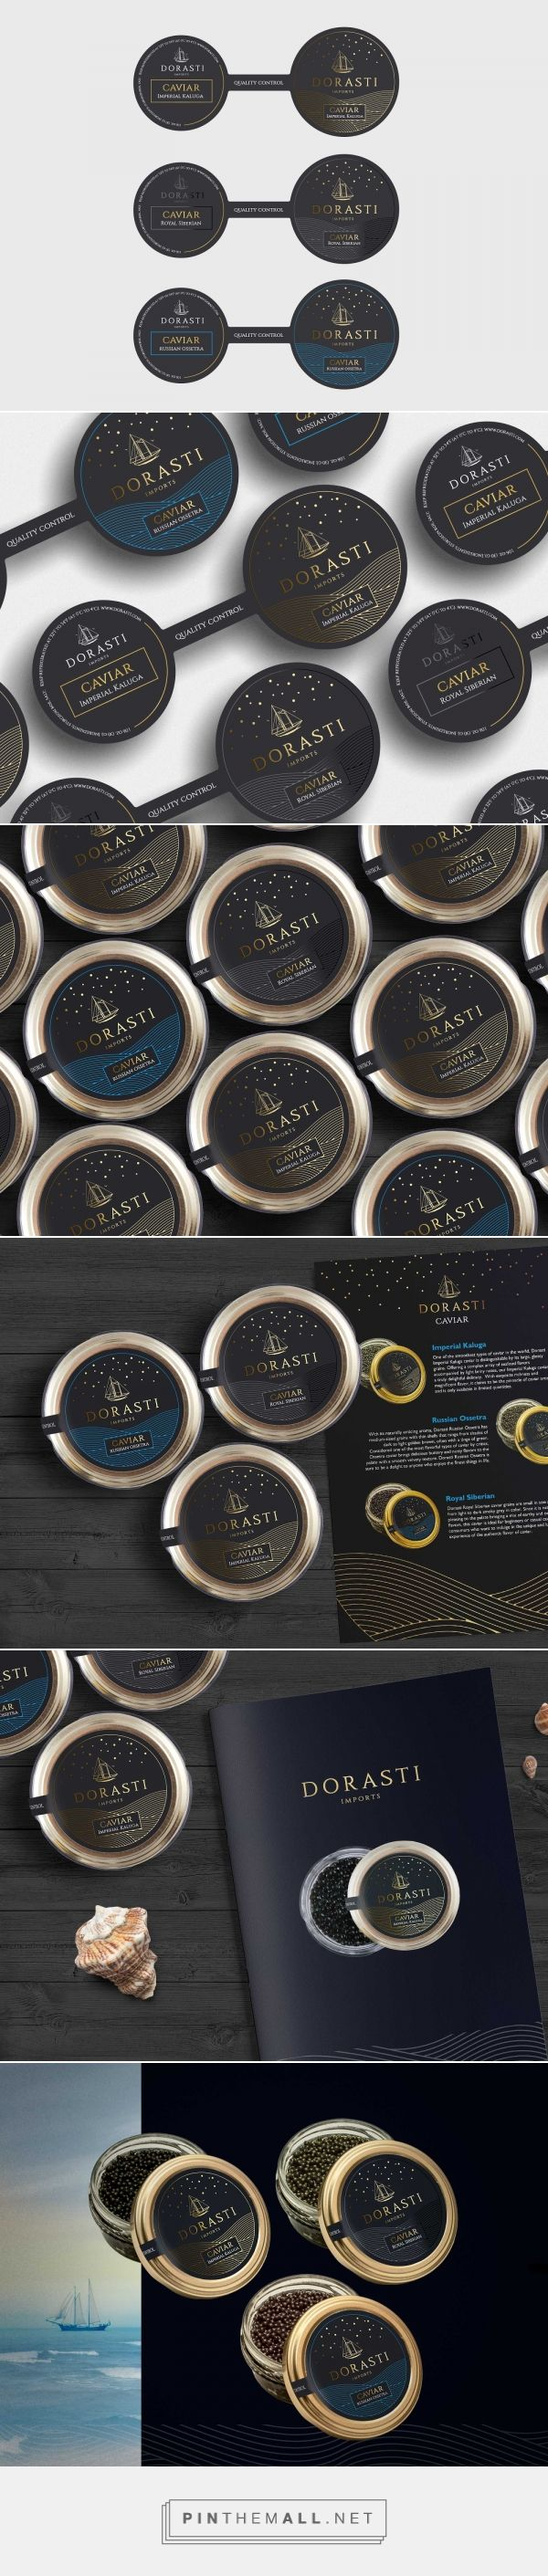 Dorasti Caviar - Packaging of the World - Creative Package Design Gallery - http://www.packagingoftheworld.com/2017/03/dorasti-caviar.html